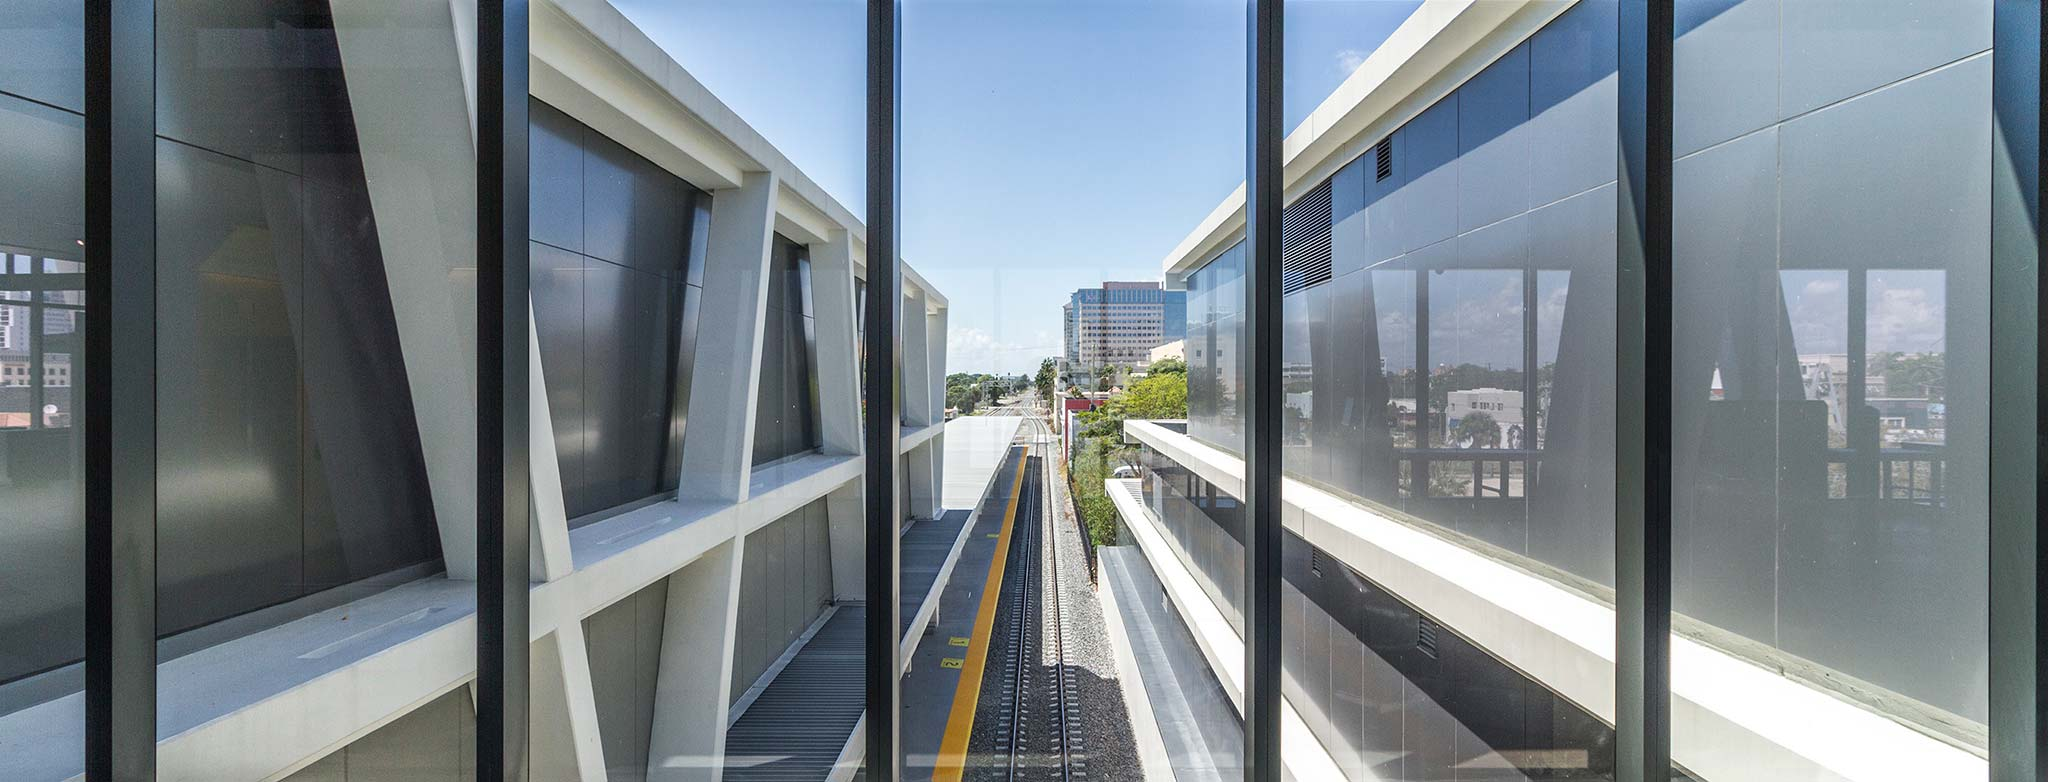 Brightline Station West Palm Beach